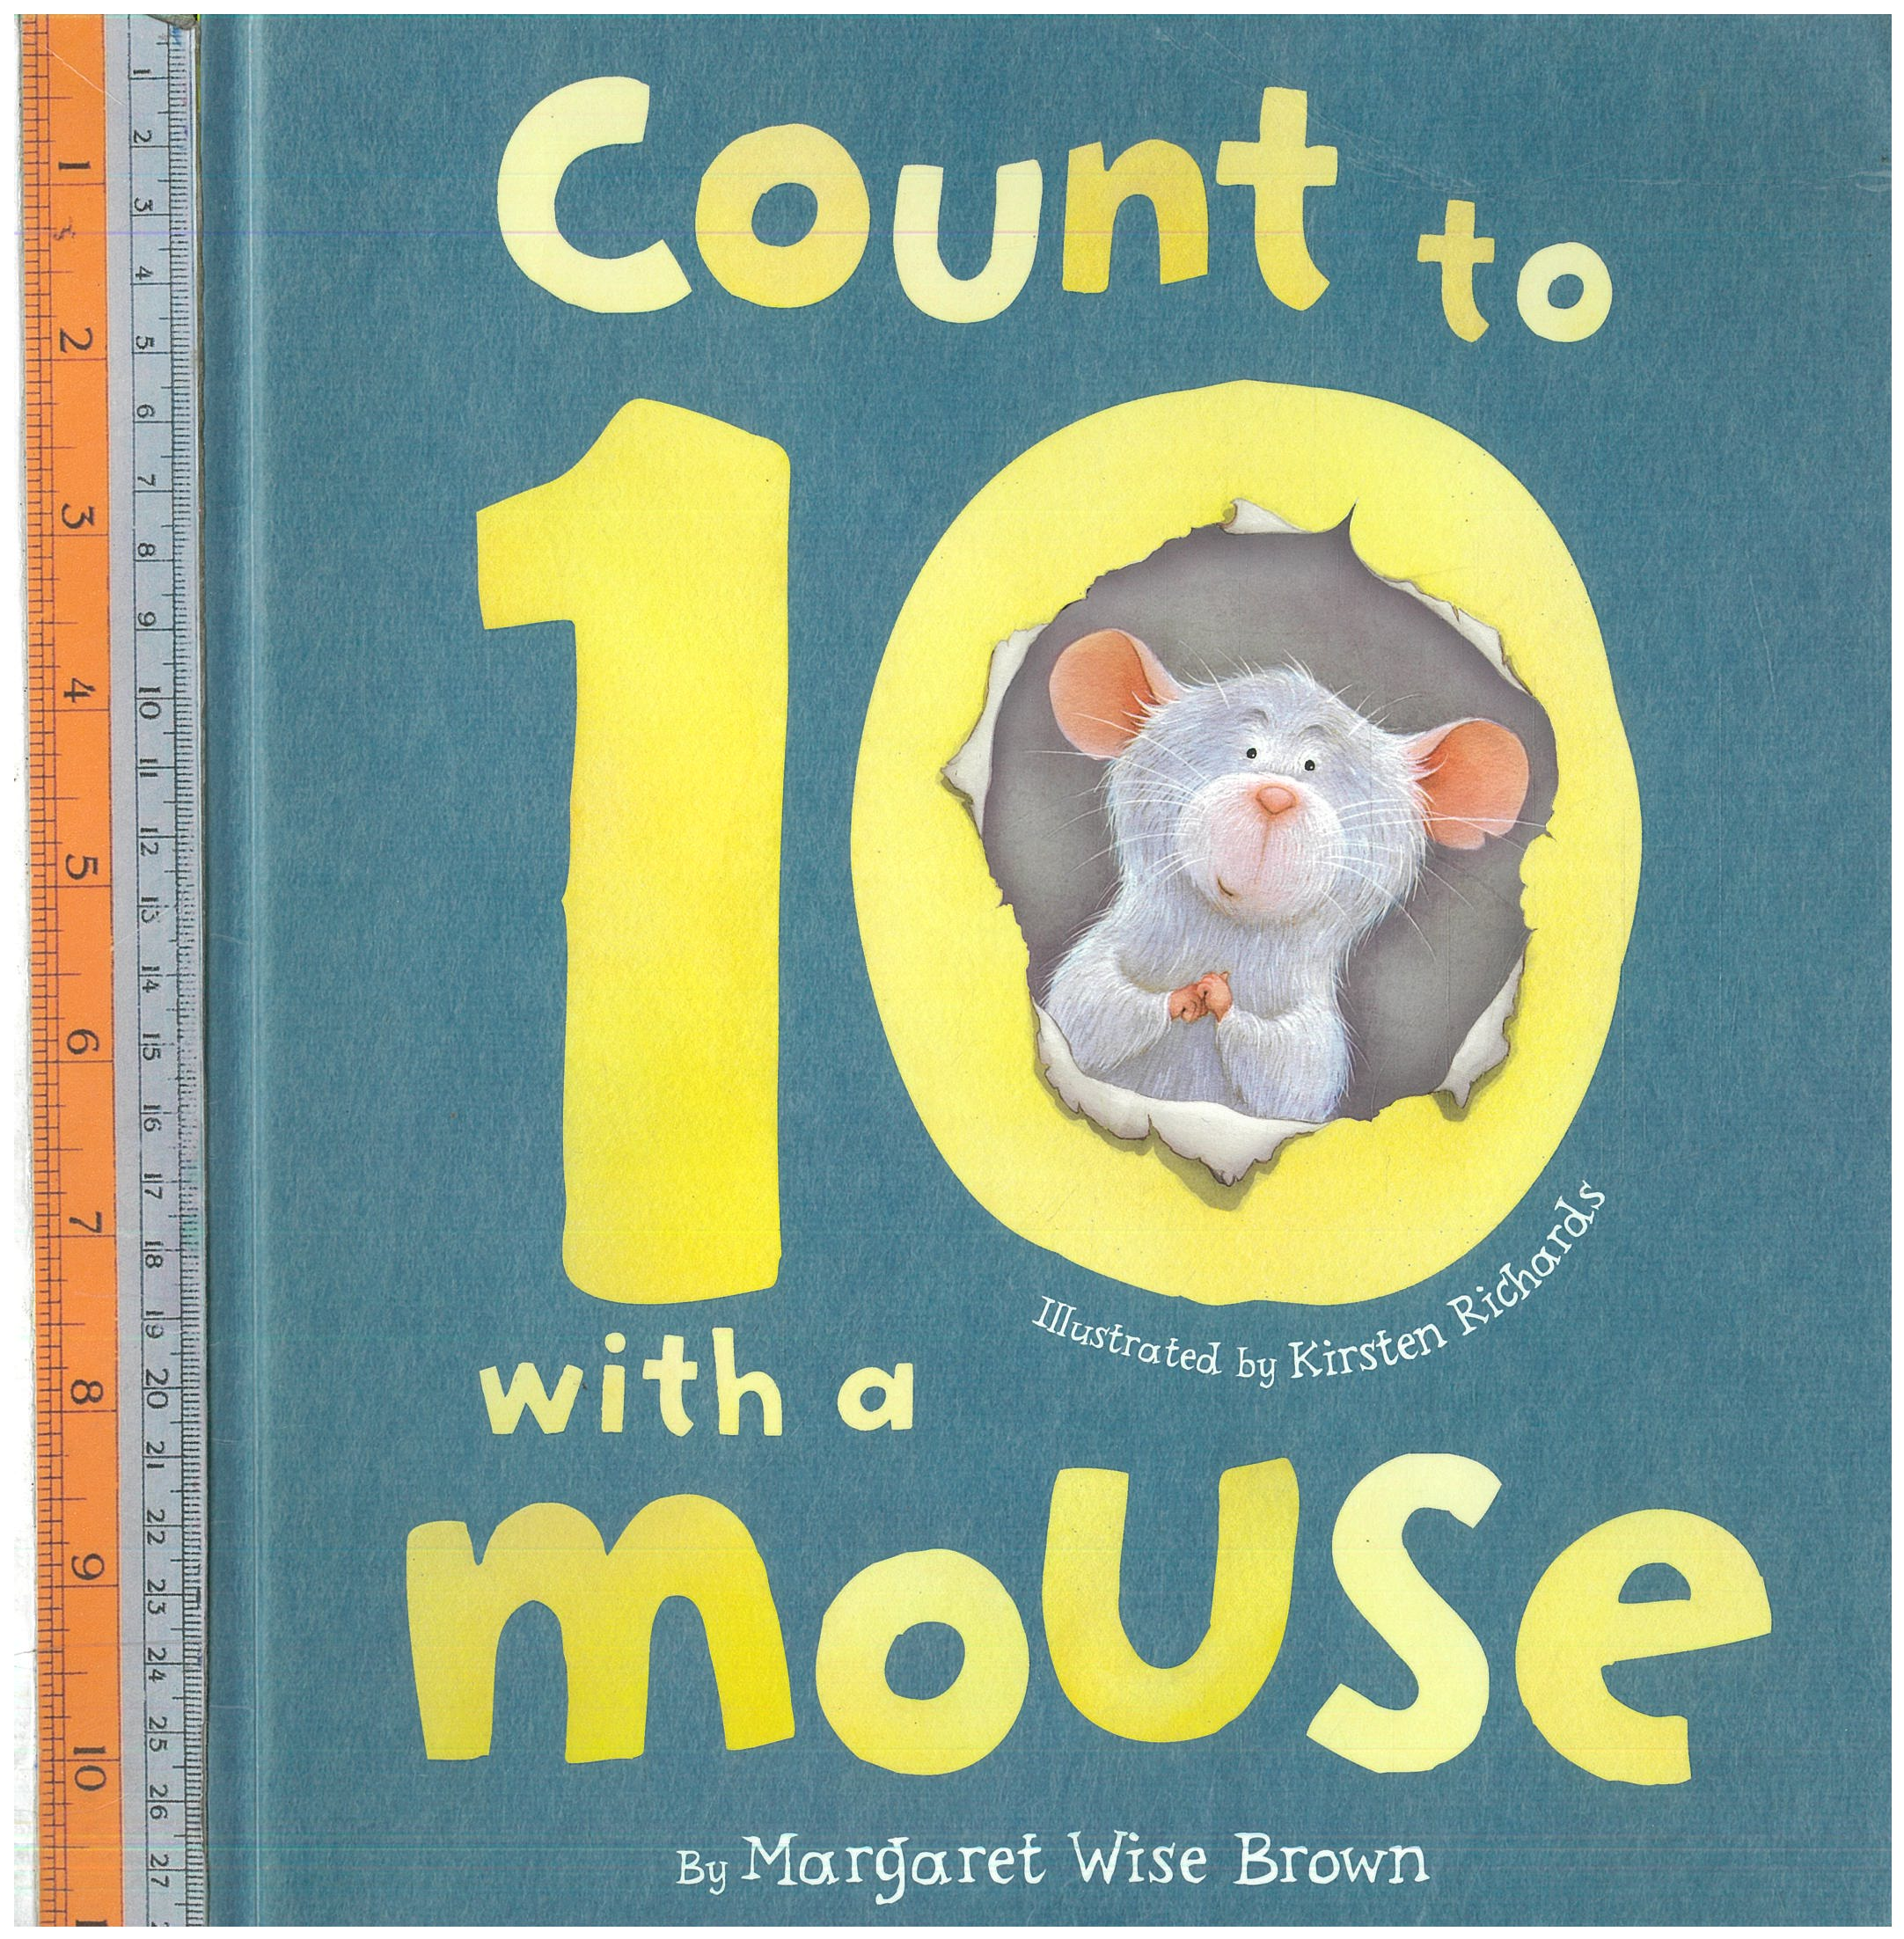 10 mouse